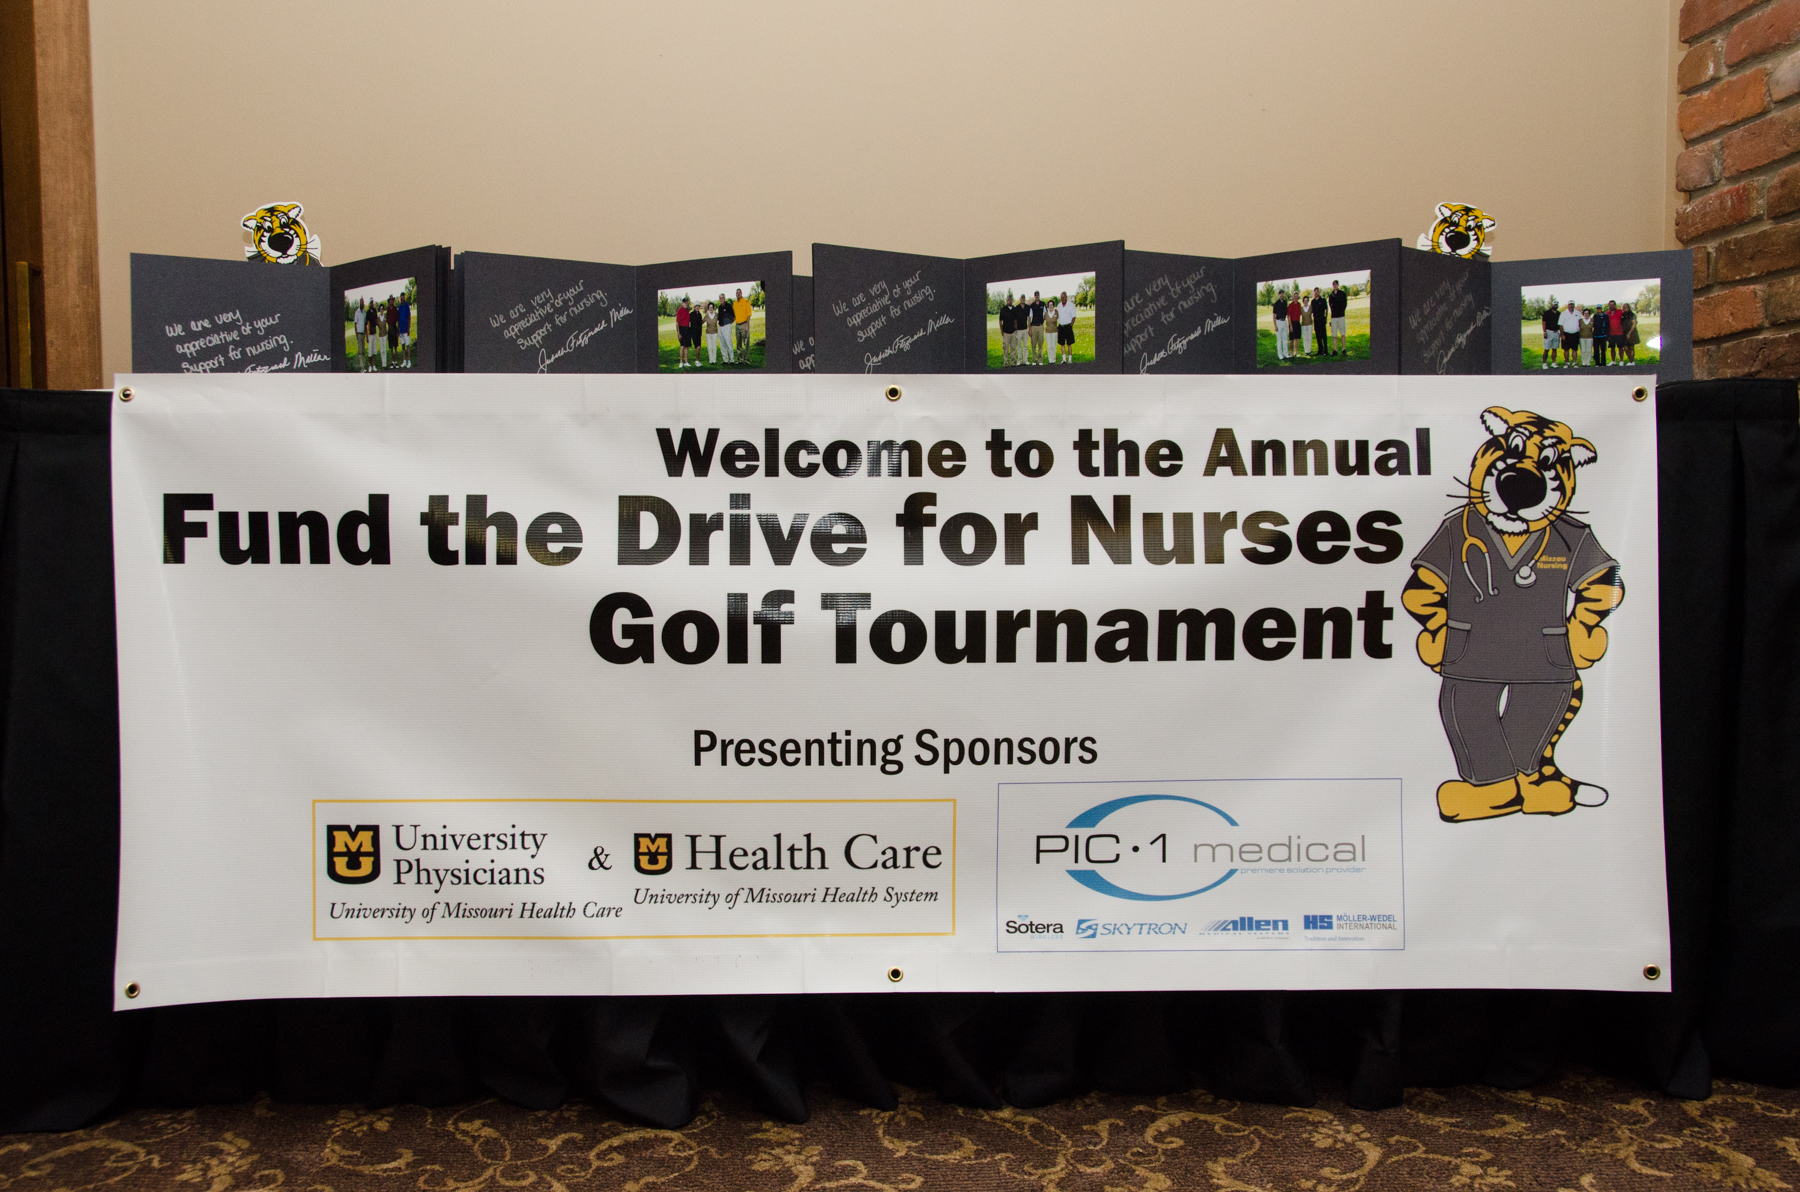 20121001_golf_tournament_103_4x6.jpg